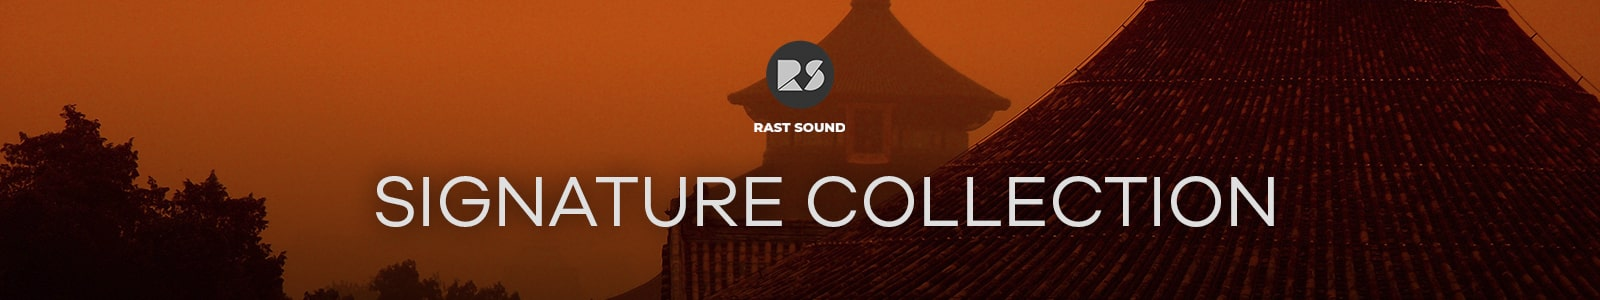 rast sound signature collection